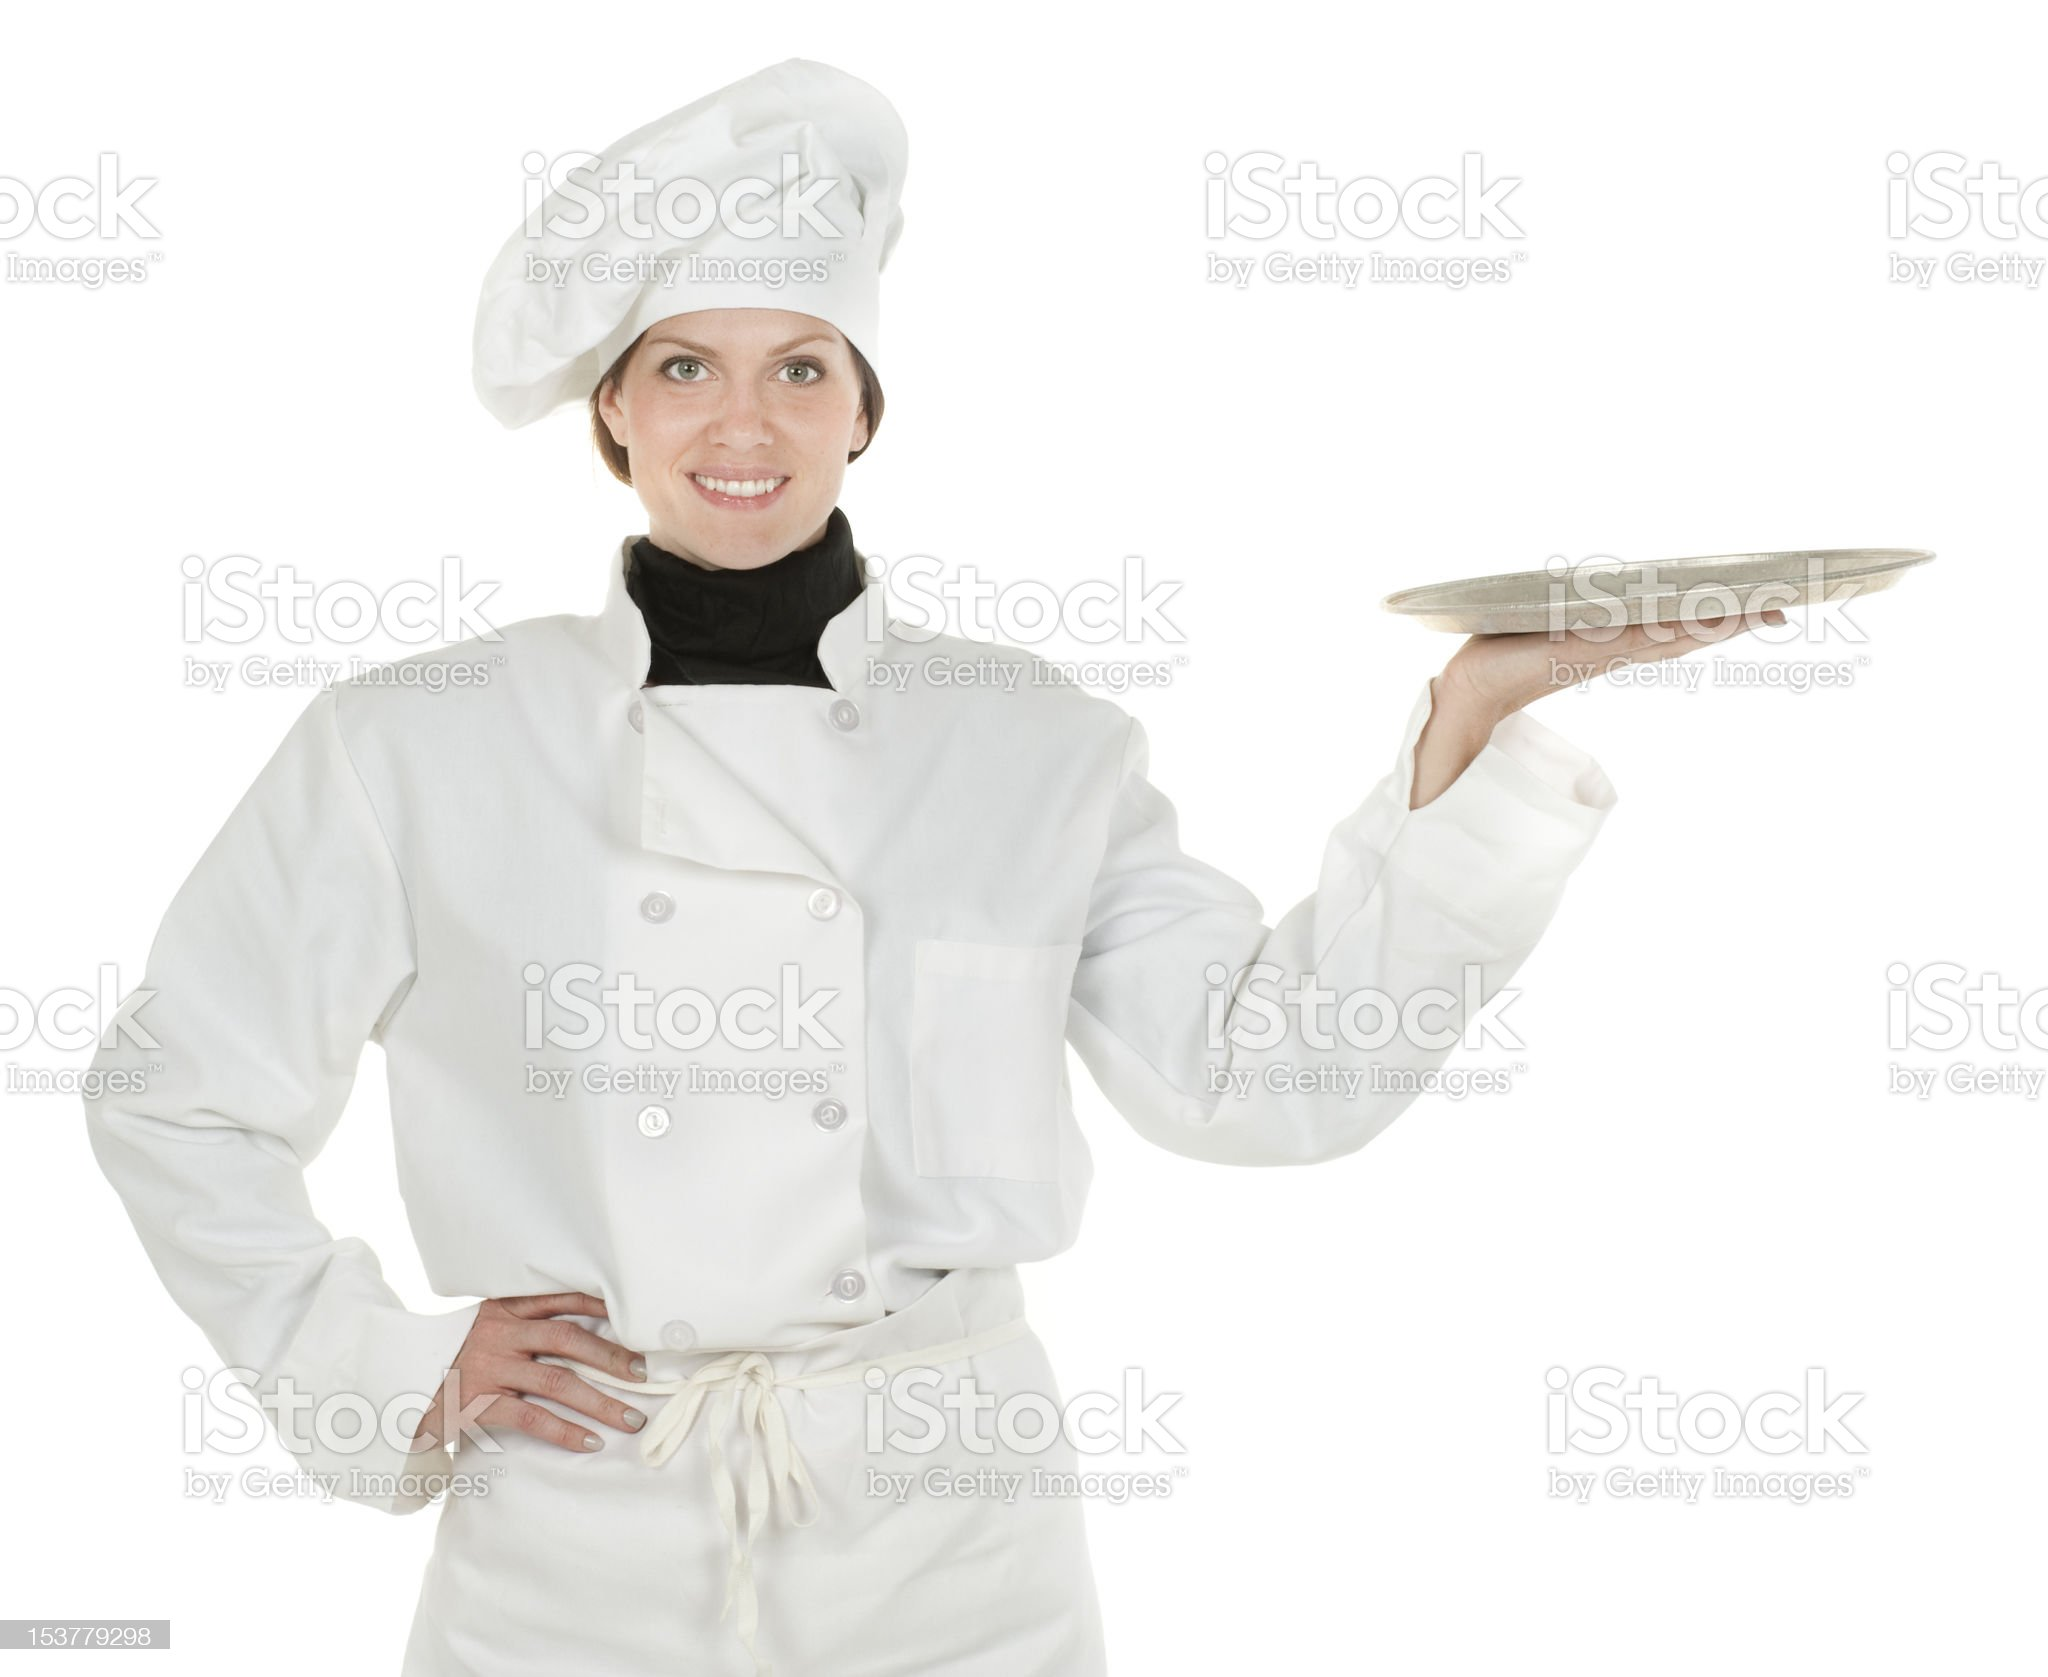 Front view of female chef holding platter. royalty-free stock photo